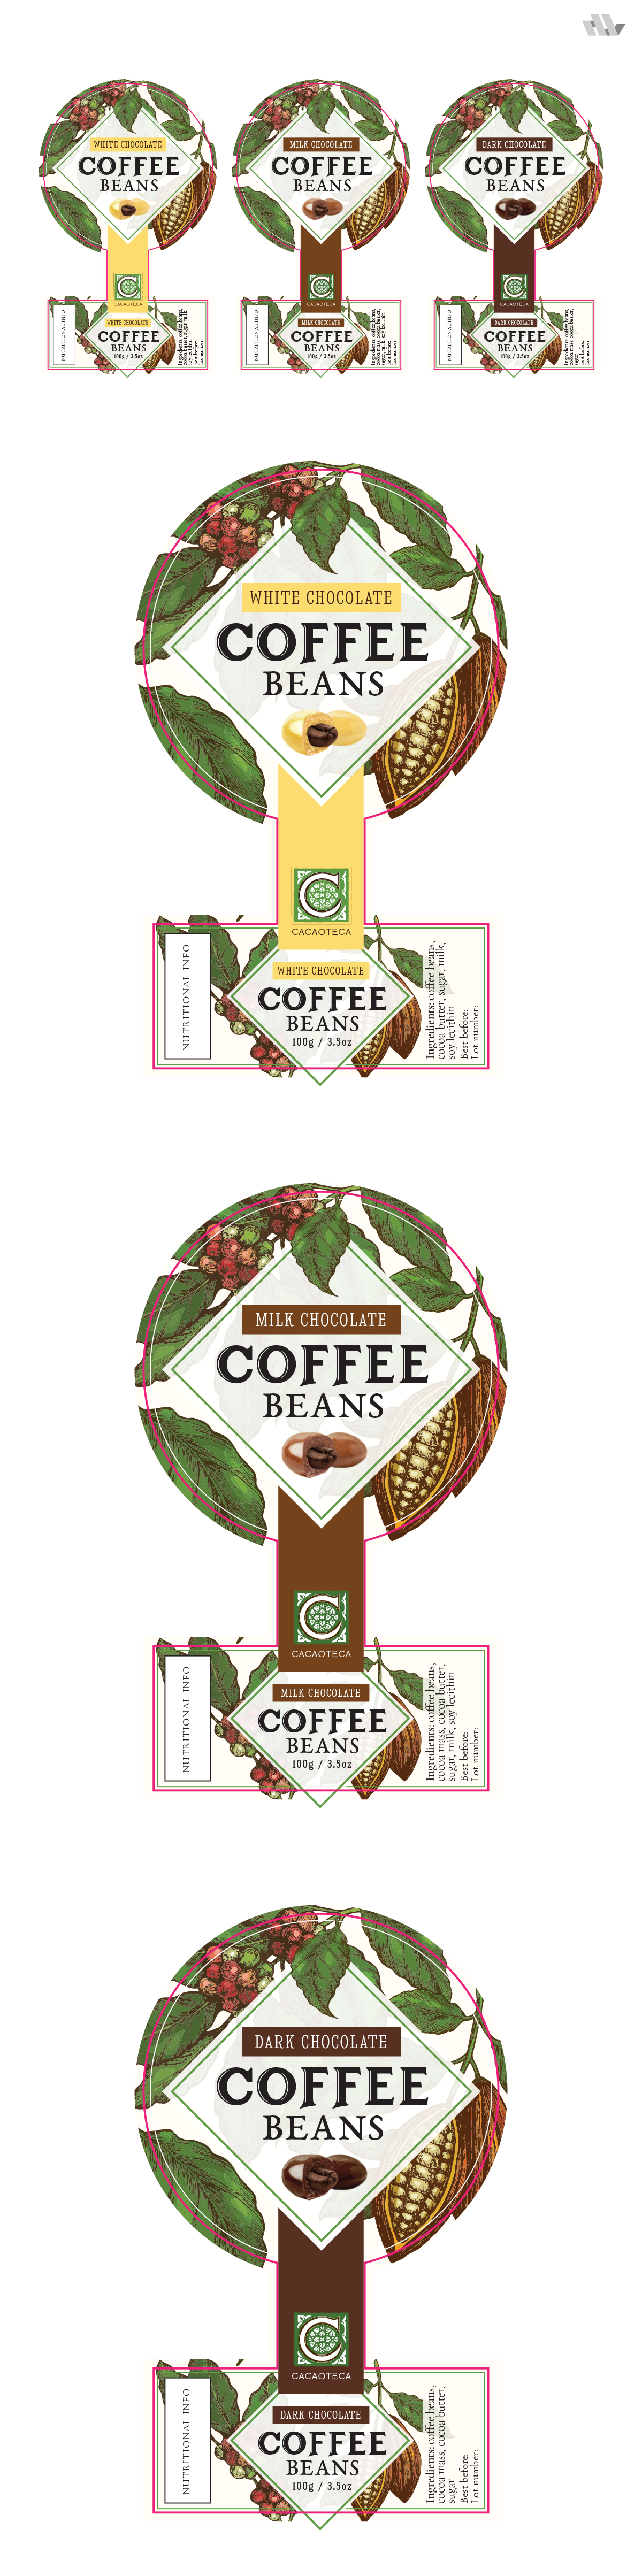 Chocolate covered coffee - label